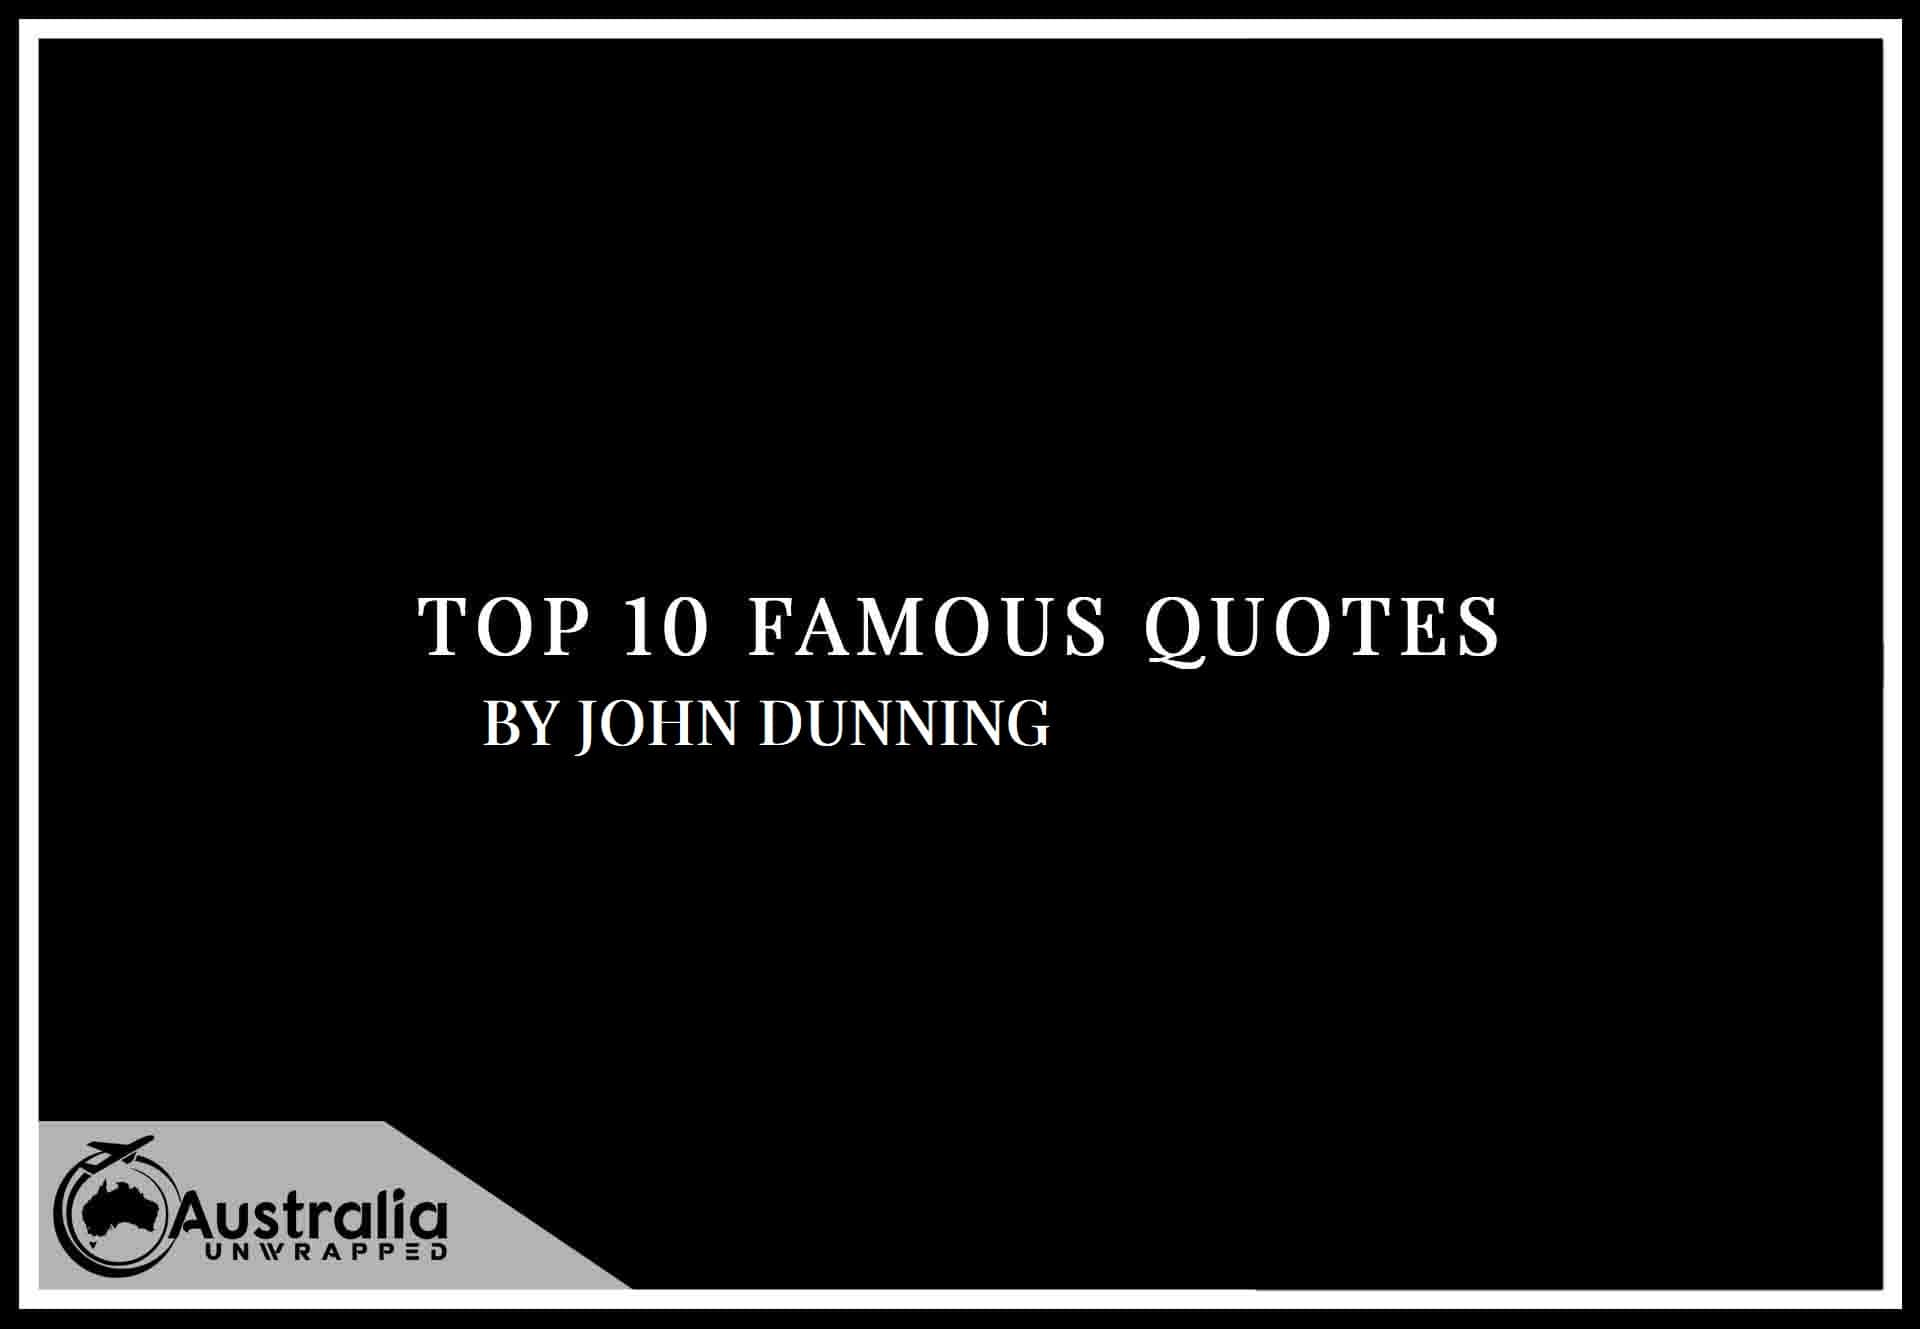 Top 10 Famous Quotes by Author John Dunning